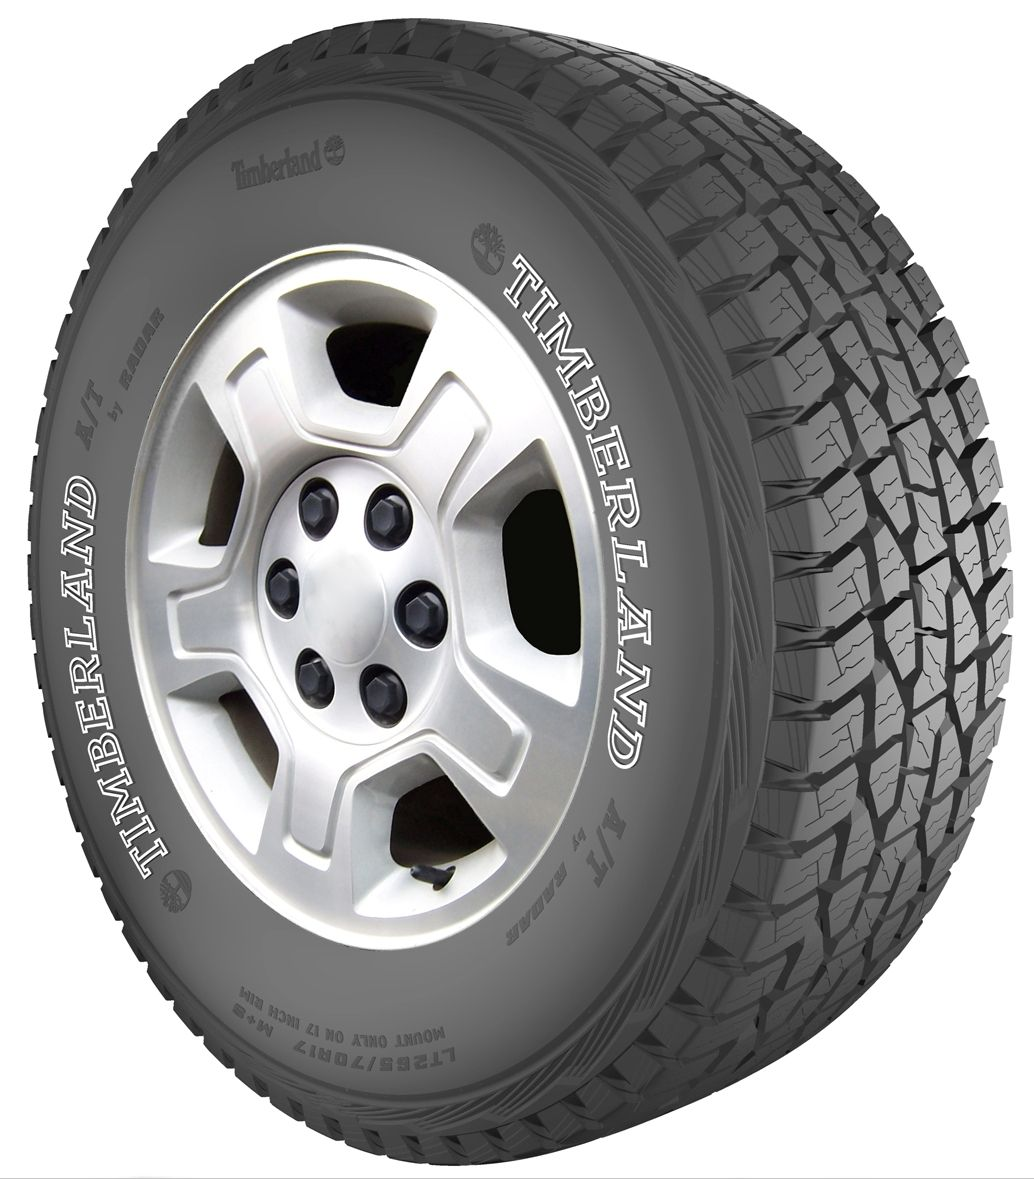 A New Timberland Tire, and More Sizes of the Timberland Cross